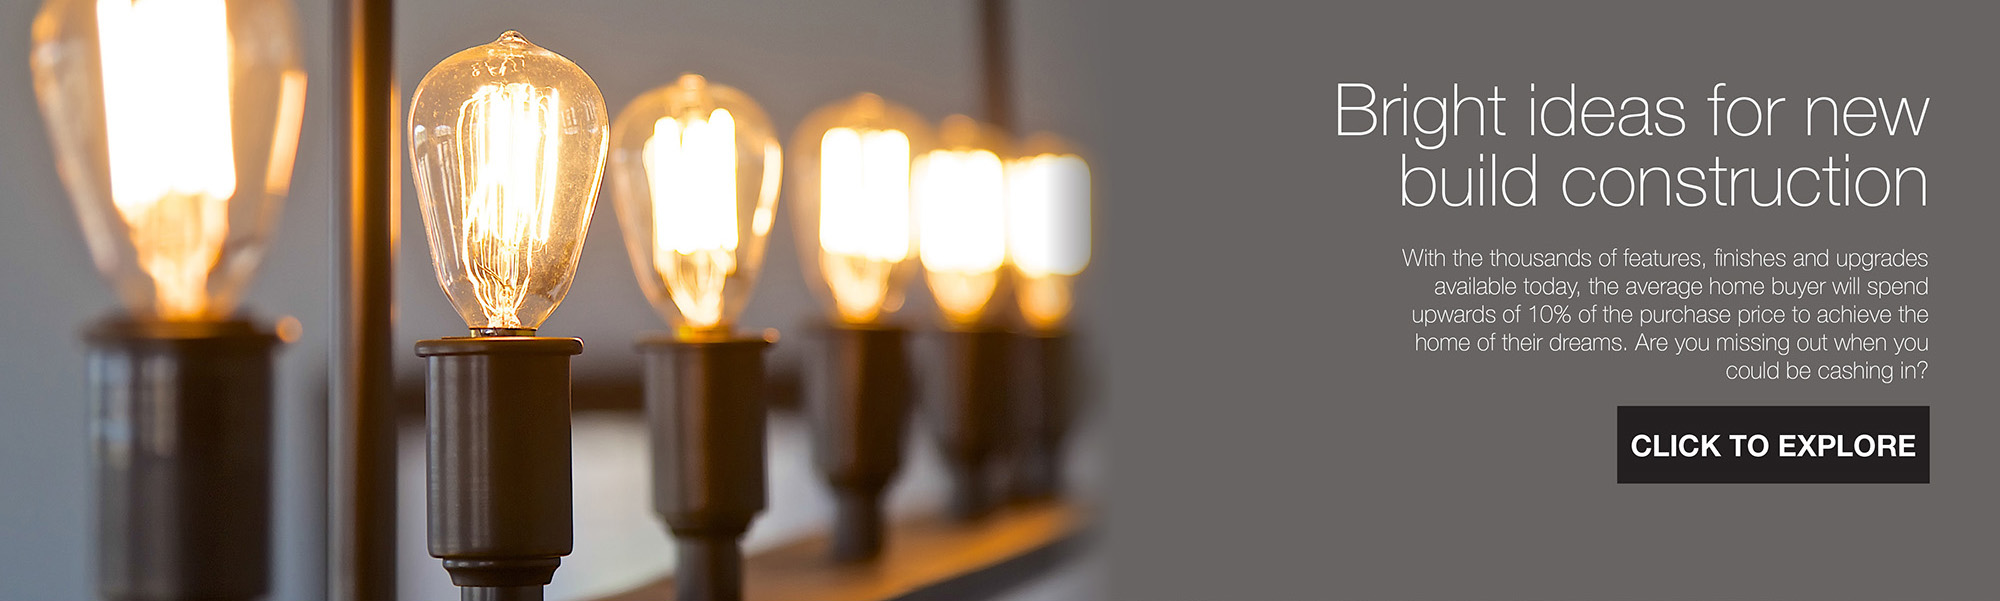 Bright ideas for new build construction